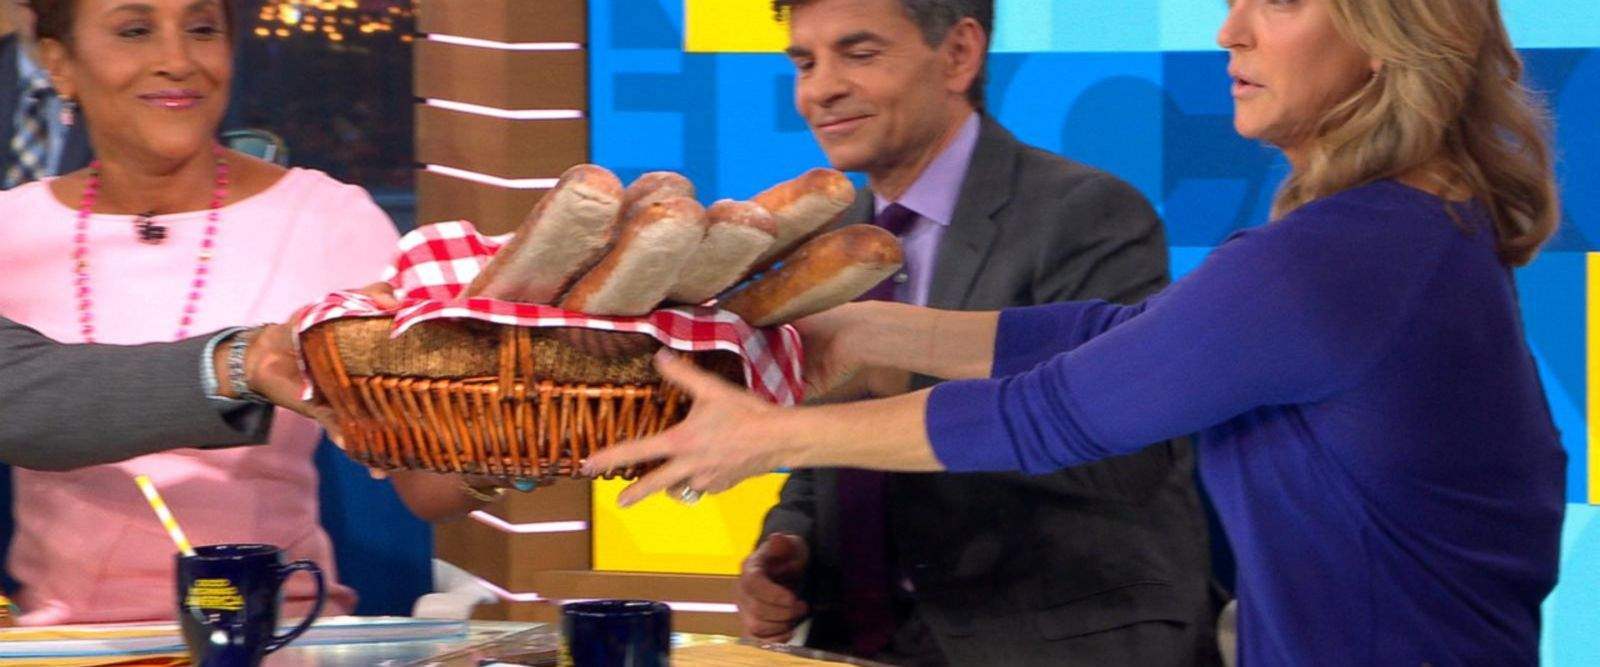 VIDEO: What food should be America's national treasure?